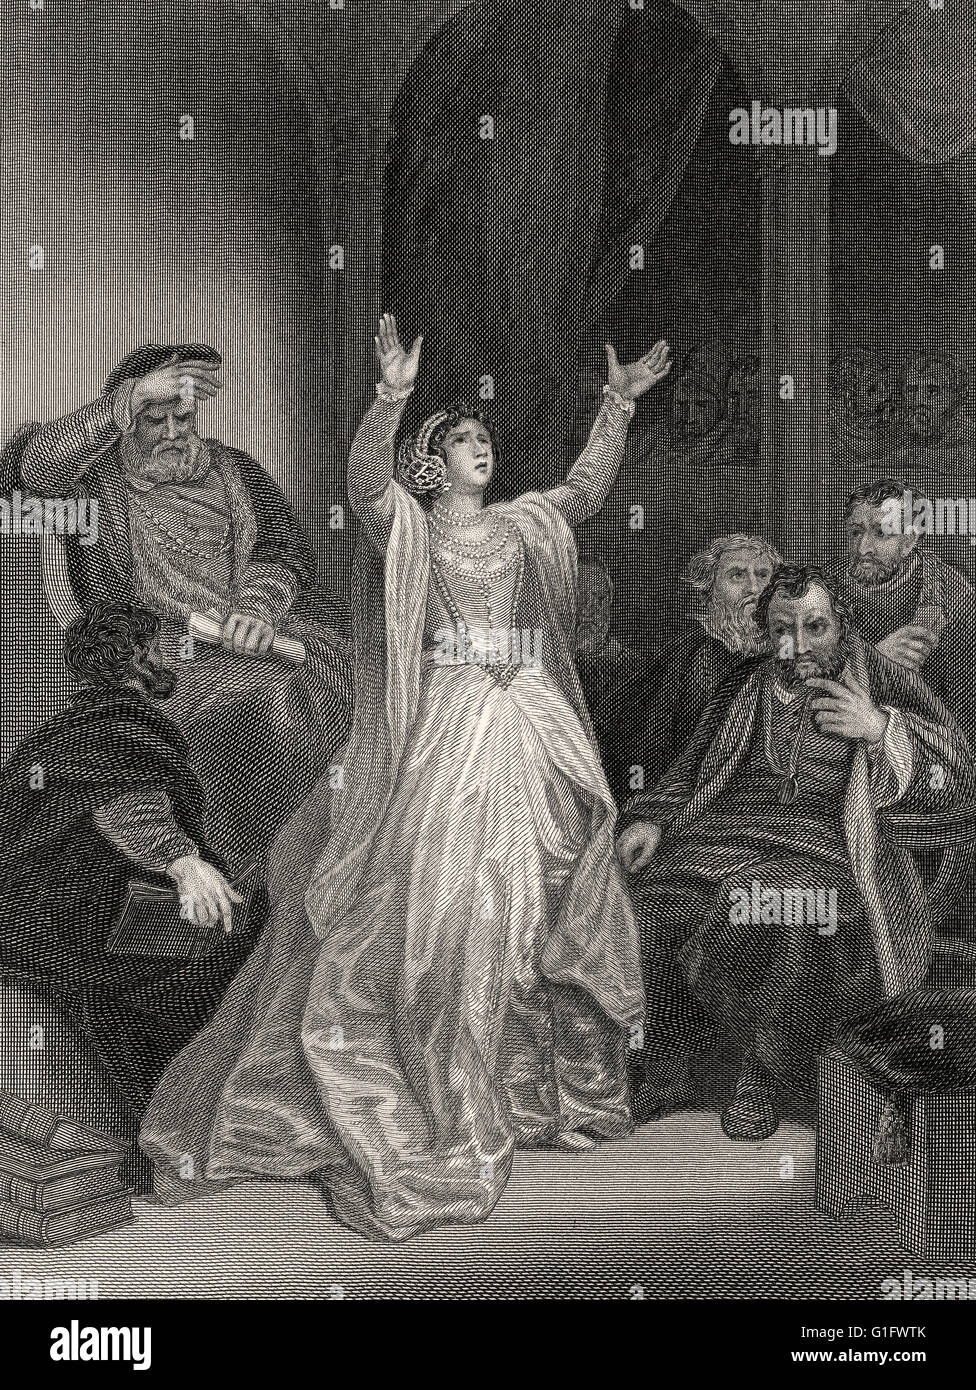 Condemnation of Anne Boleyn, 1501-1536, Queen of England from 1533 to 1536 as the second wife of King Henry VIII - Stock Image